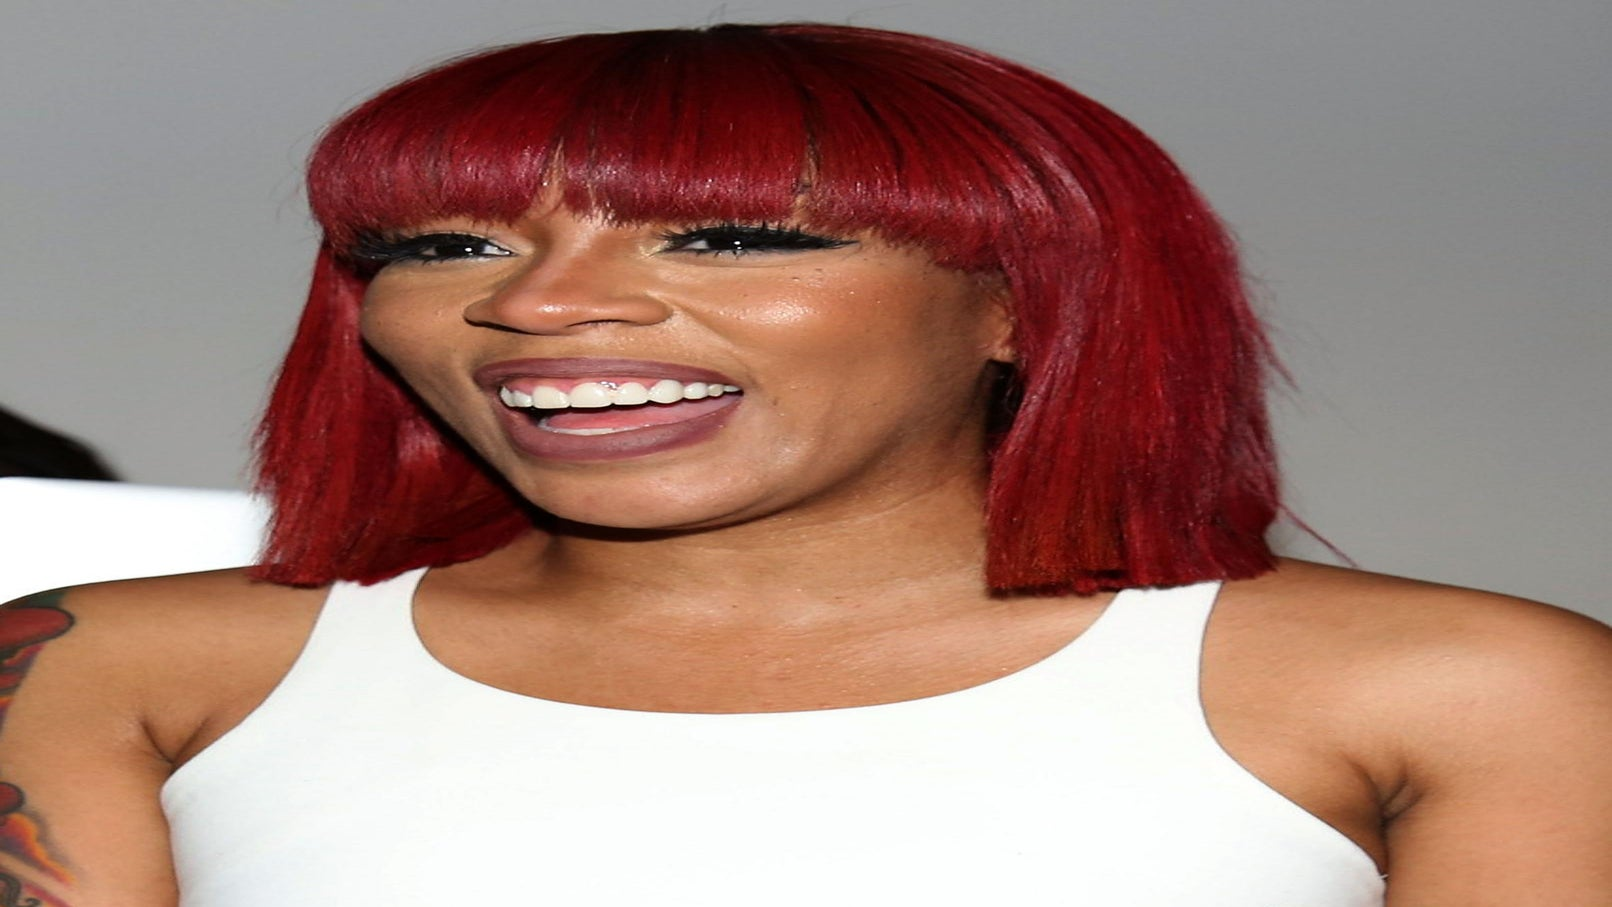 K. Michelle's Red Bob Is The Perfect Spring Color and Cut